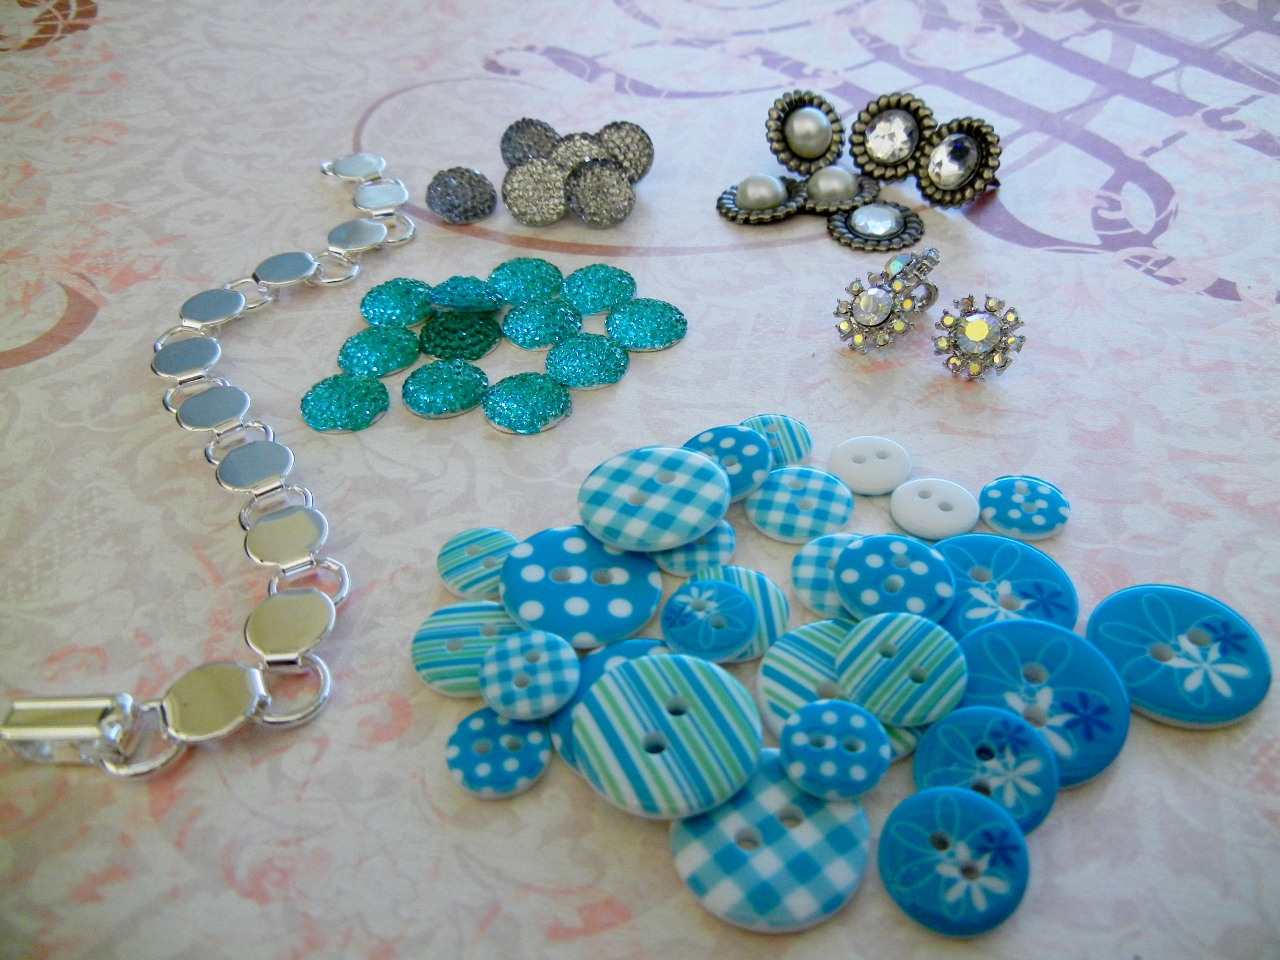 Do it yourself custom bracelets rings and things you can also sometimes find cool button like pieces in the scrapbooking section of craft stores solutioingenieria Images